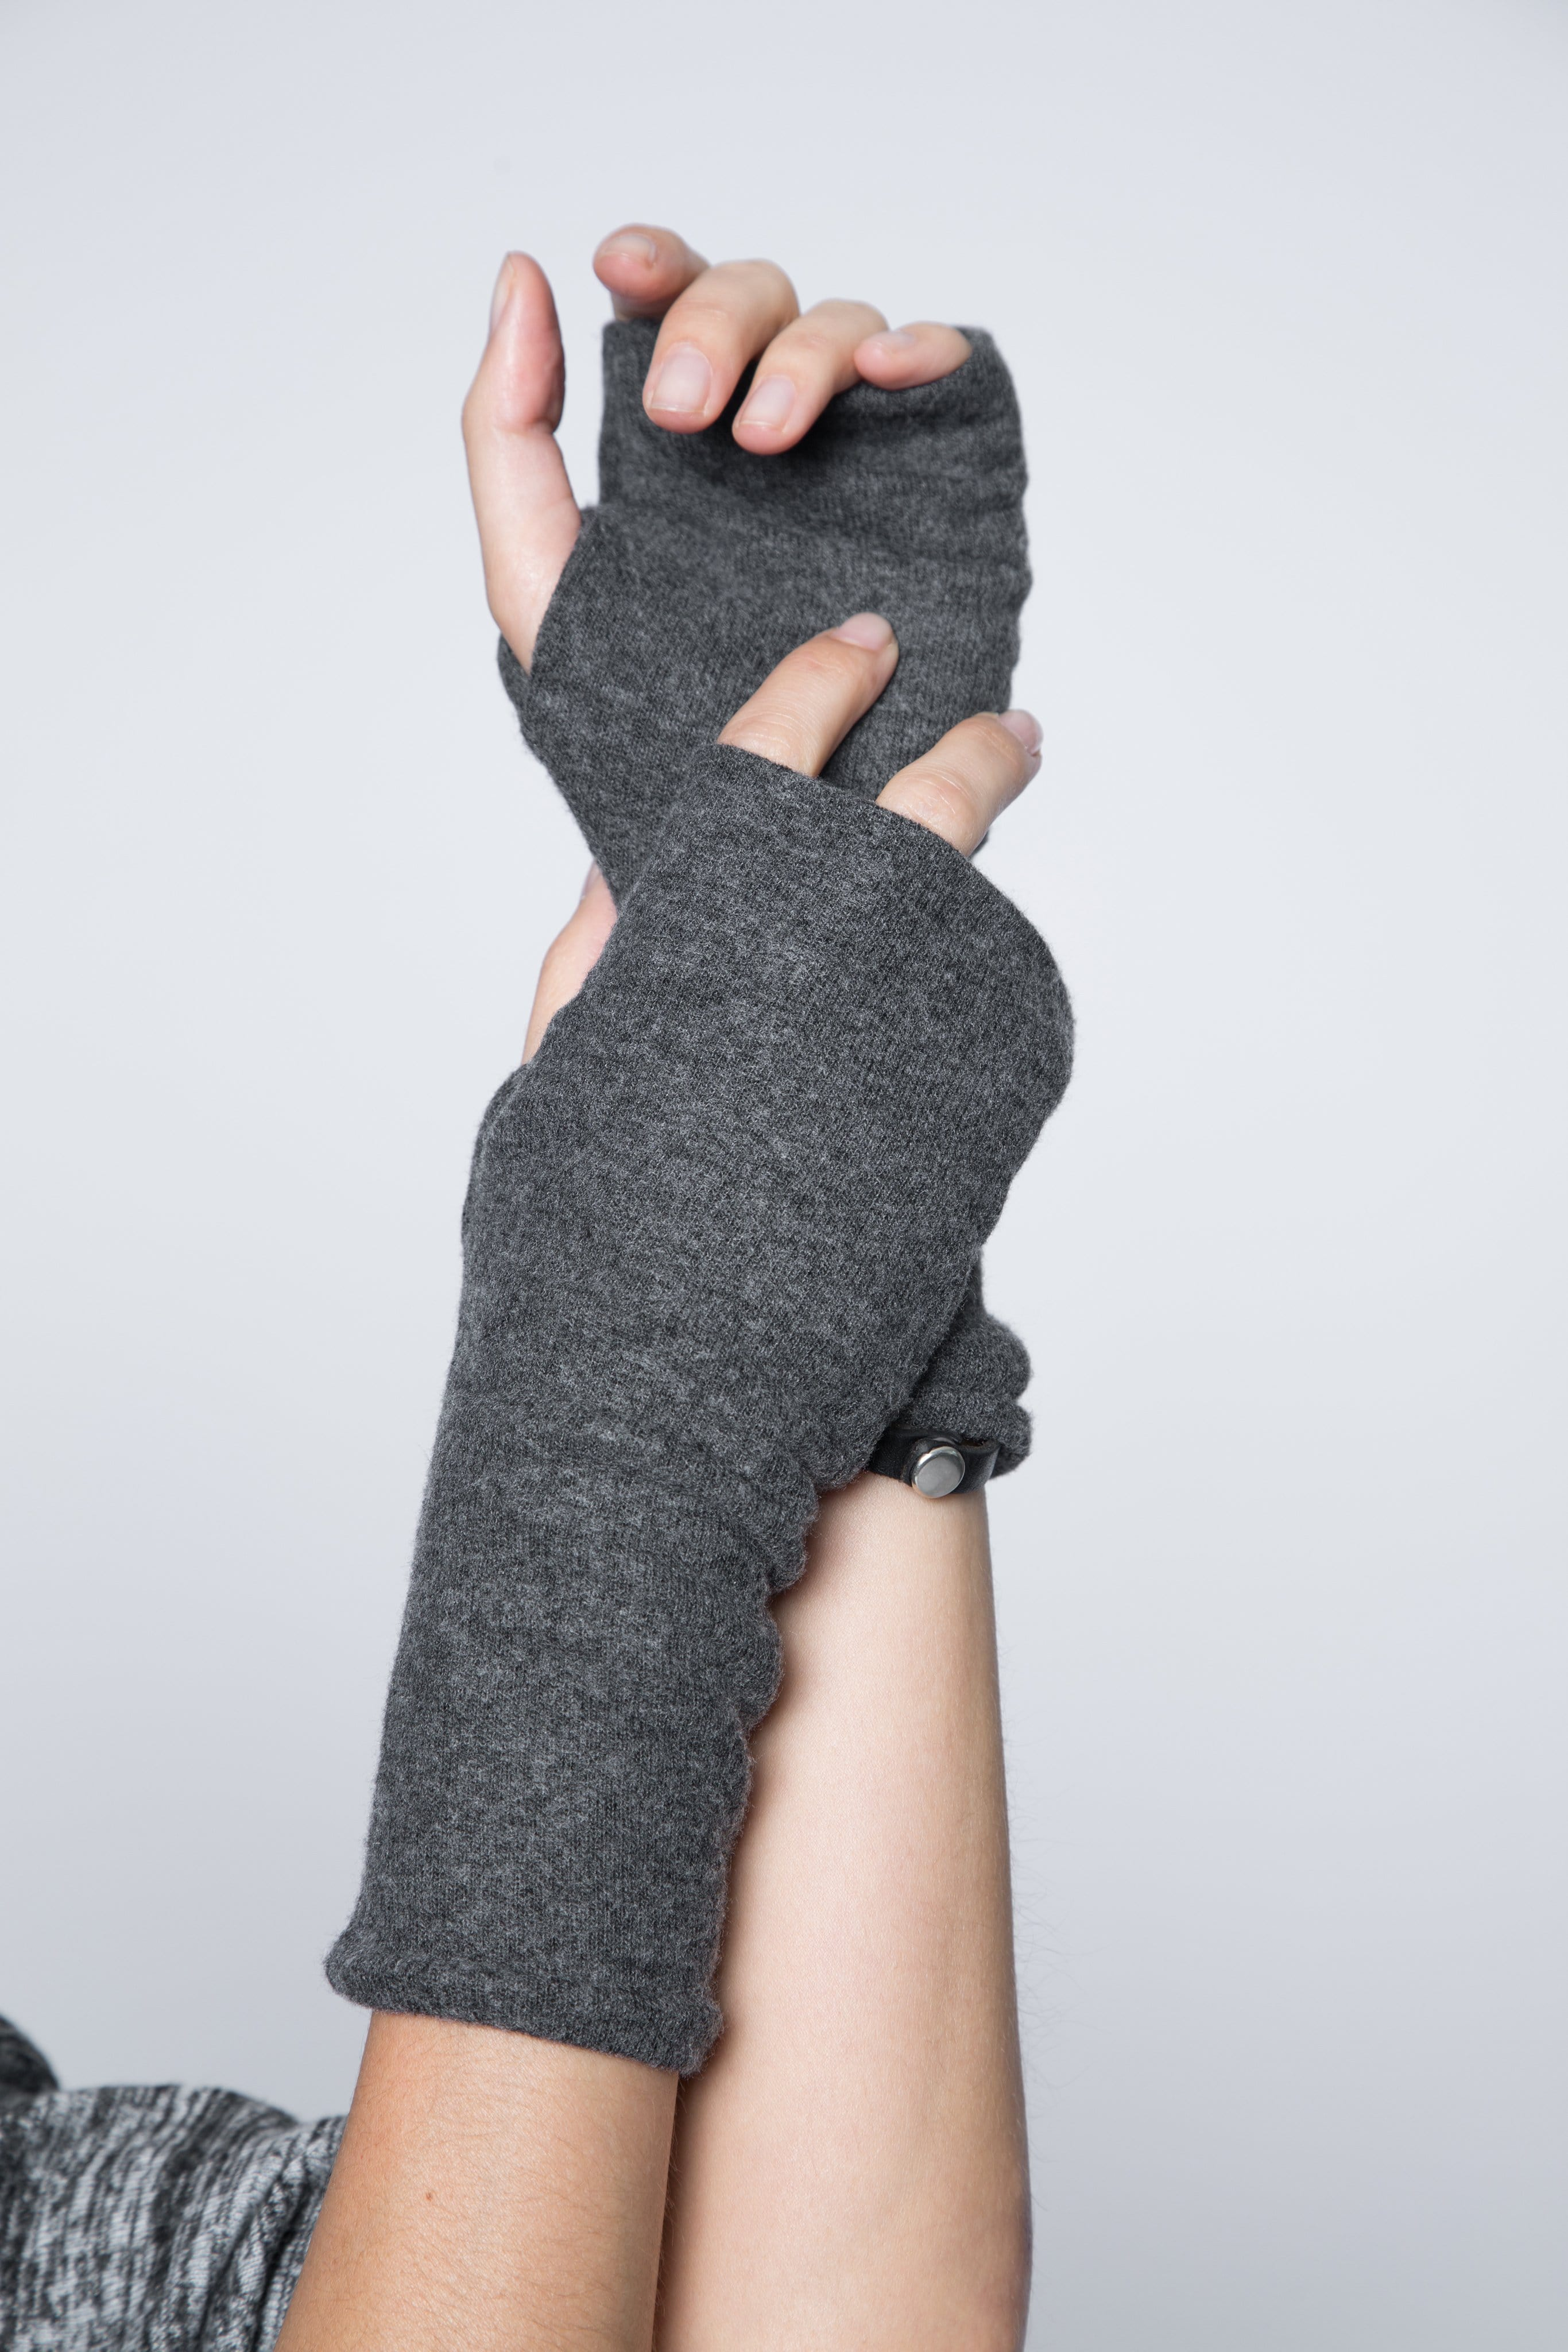 One size dark grey fingerless gloves.